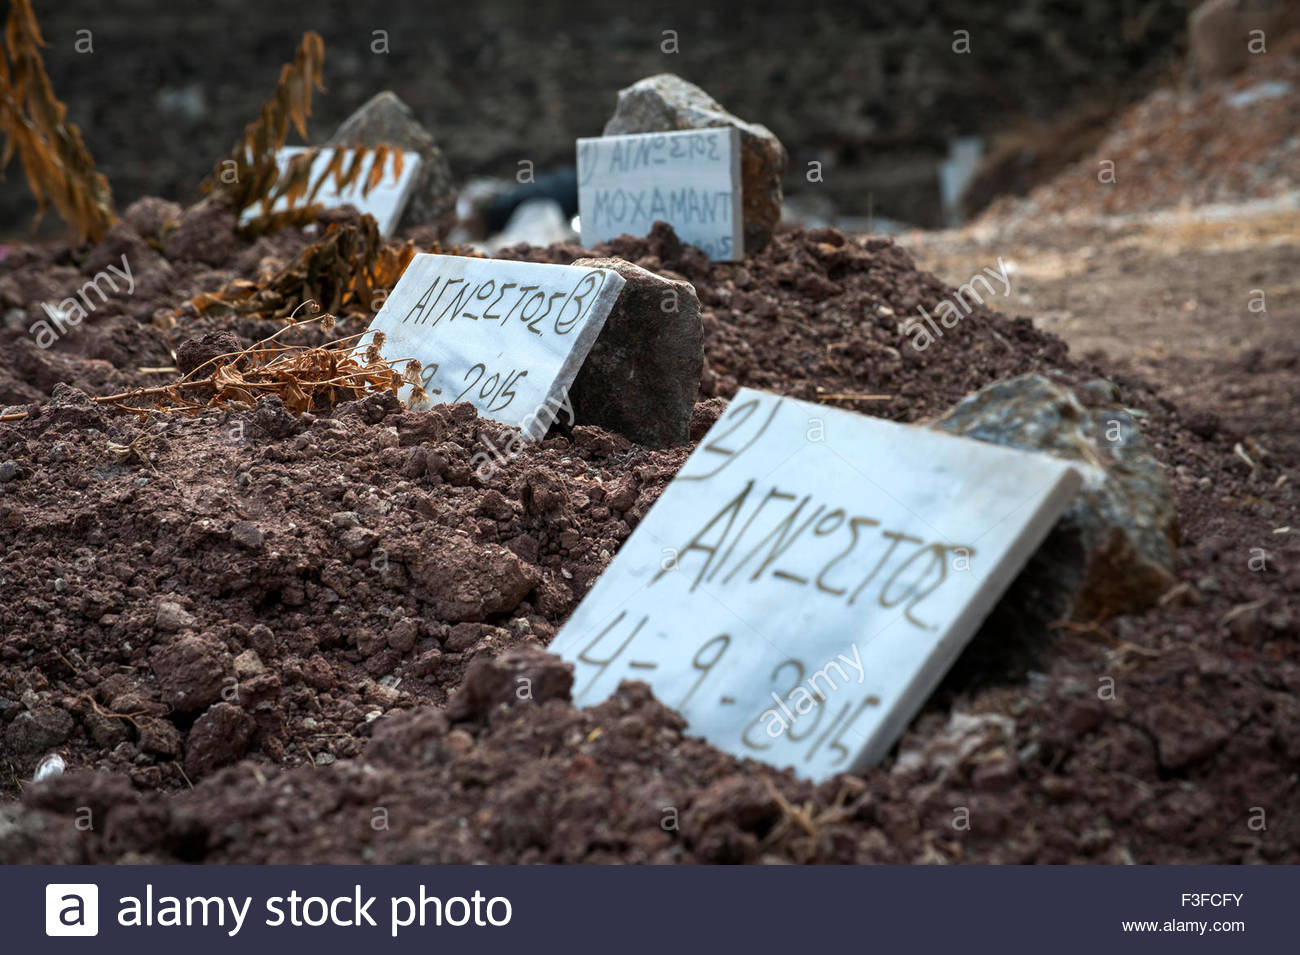 Refugee Graves at Saint Panteleimon cemetery Mytilini, Lesbos Greece. - Stock Image